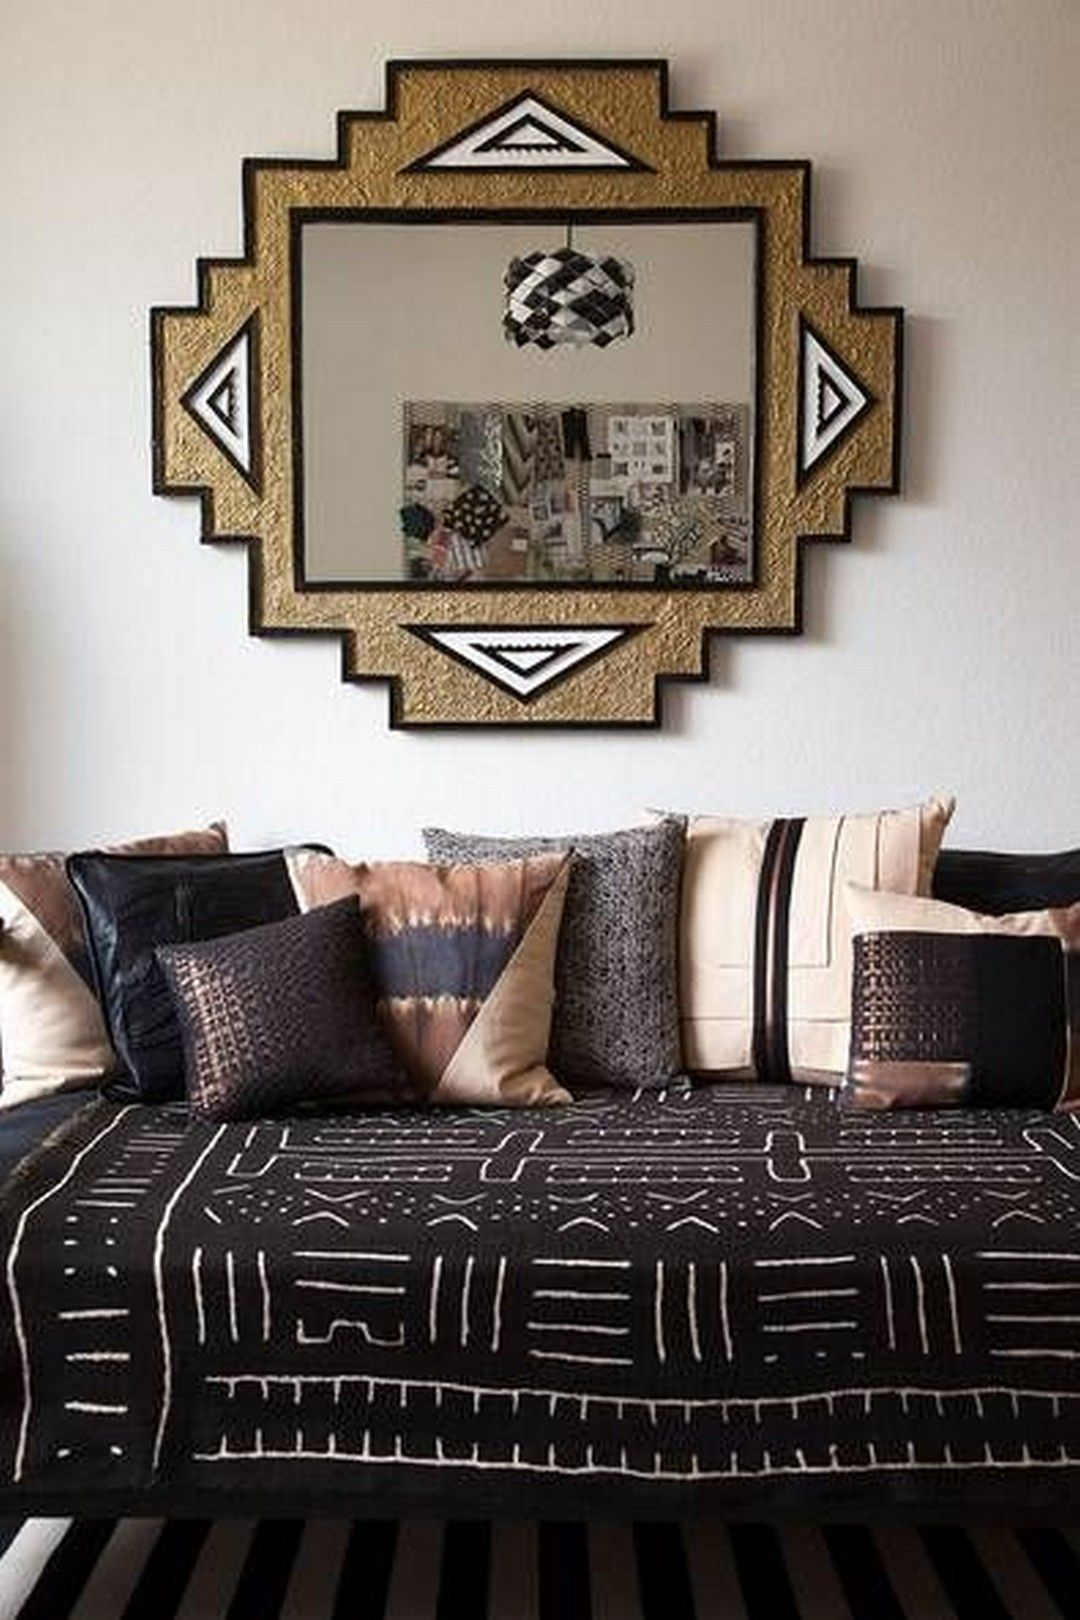 25 New Exotic Dark Boho Room Decor #dunkleinnenräume